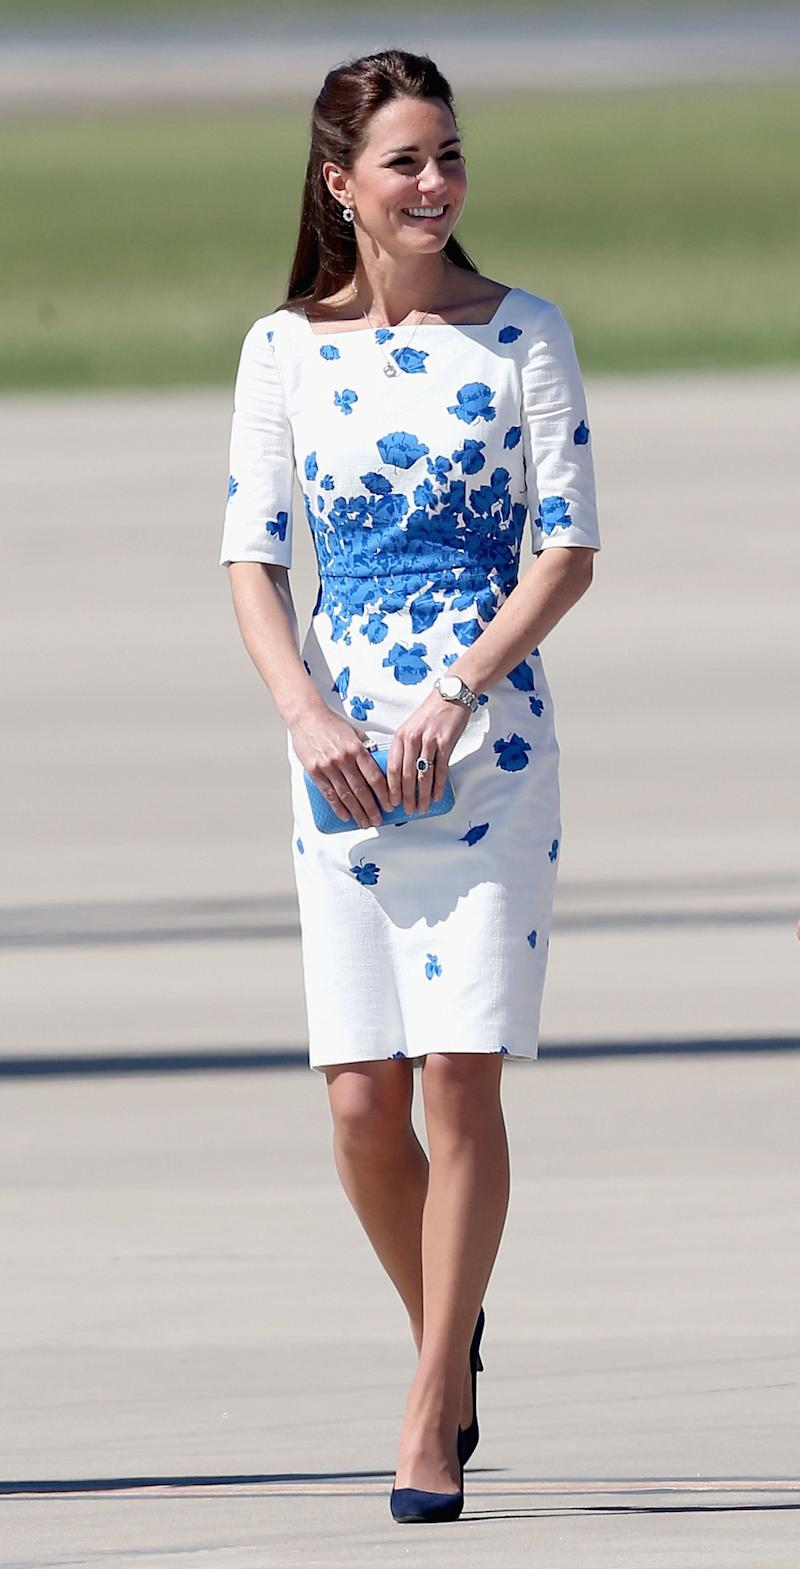 Kate stopped traffic in a lovely floral-print frock by L.K Bennett while arriving at the Royal Australian Airforce Base in Brisbane on April 19, 2014.